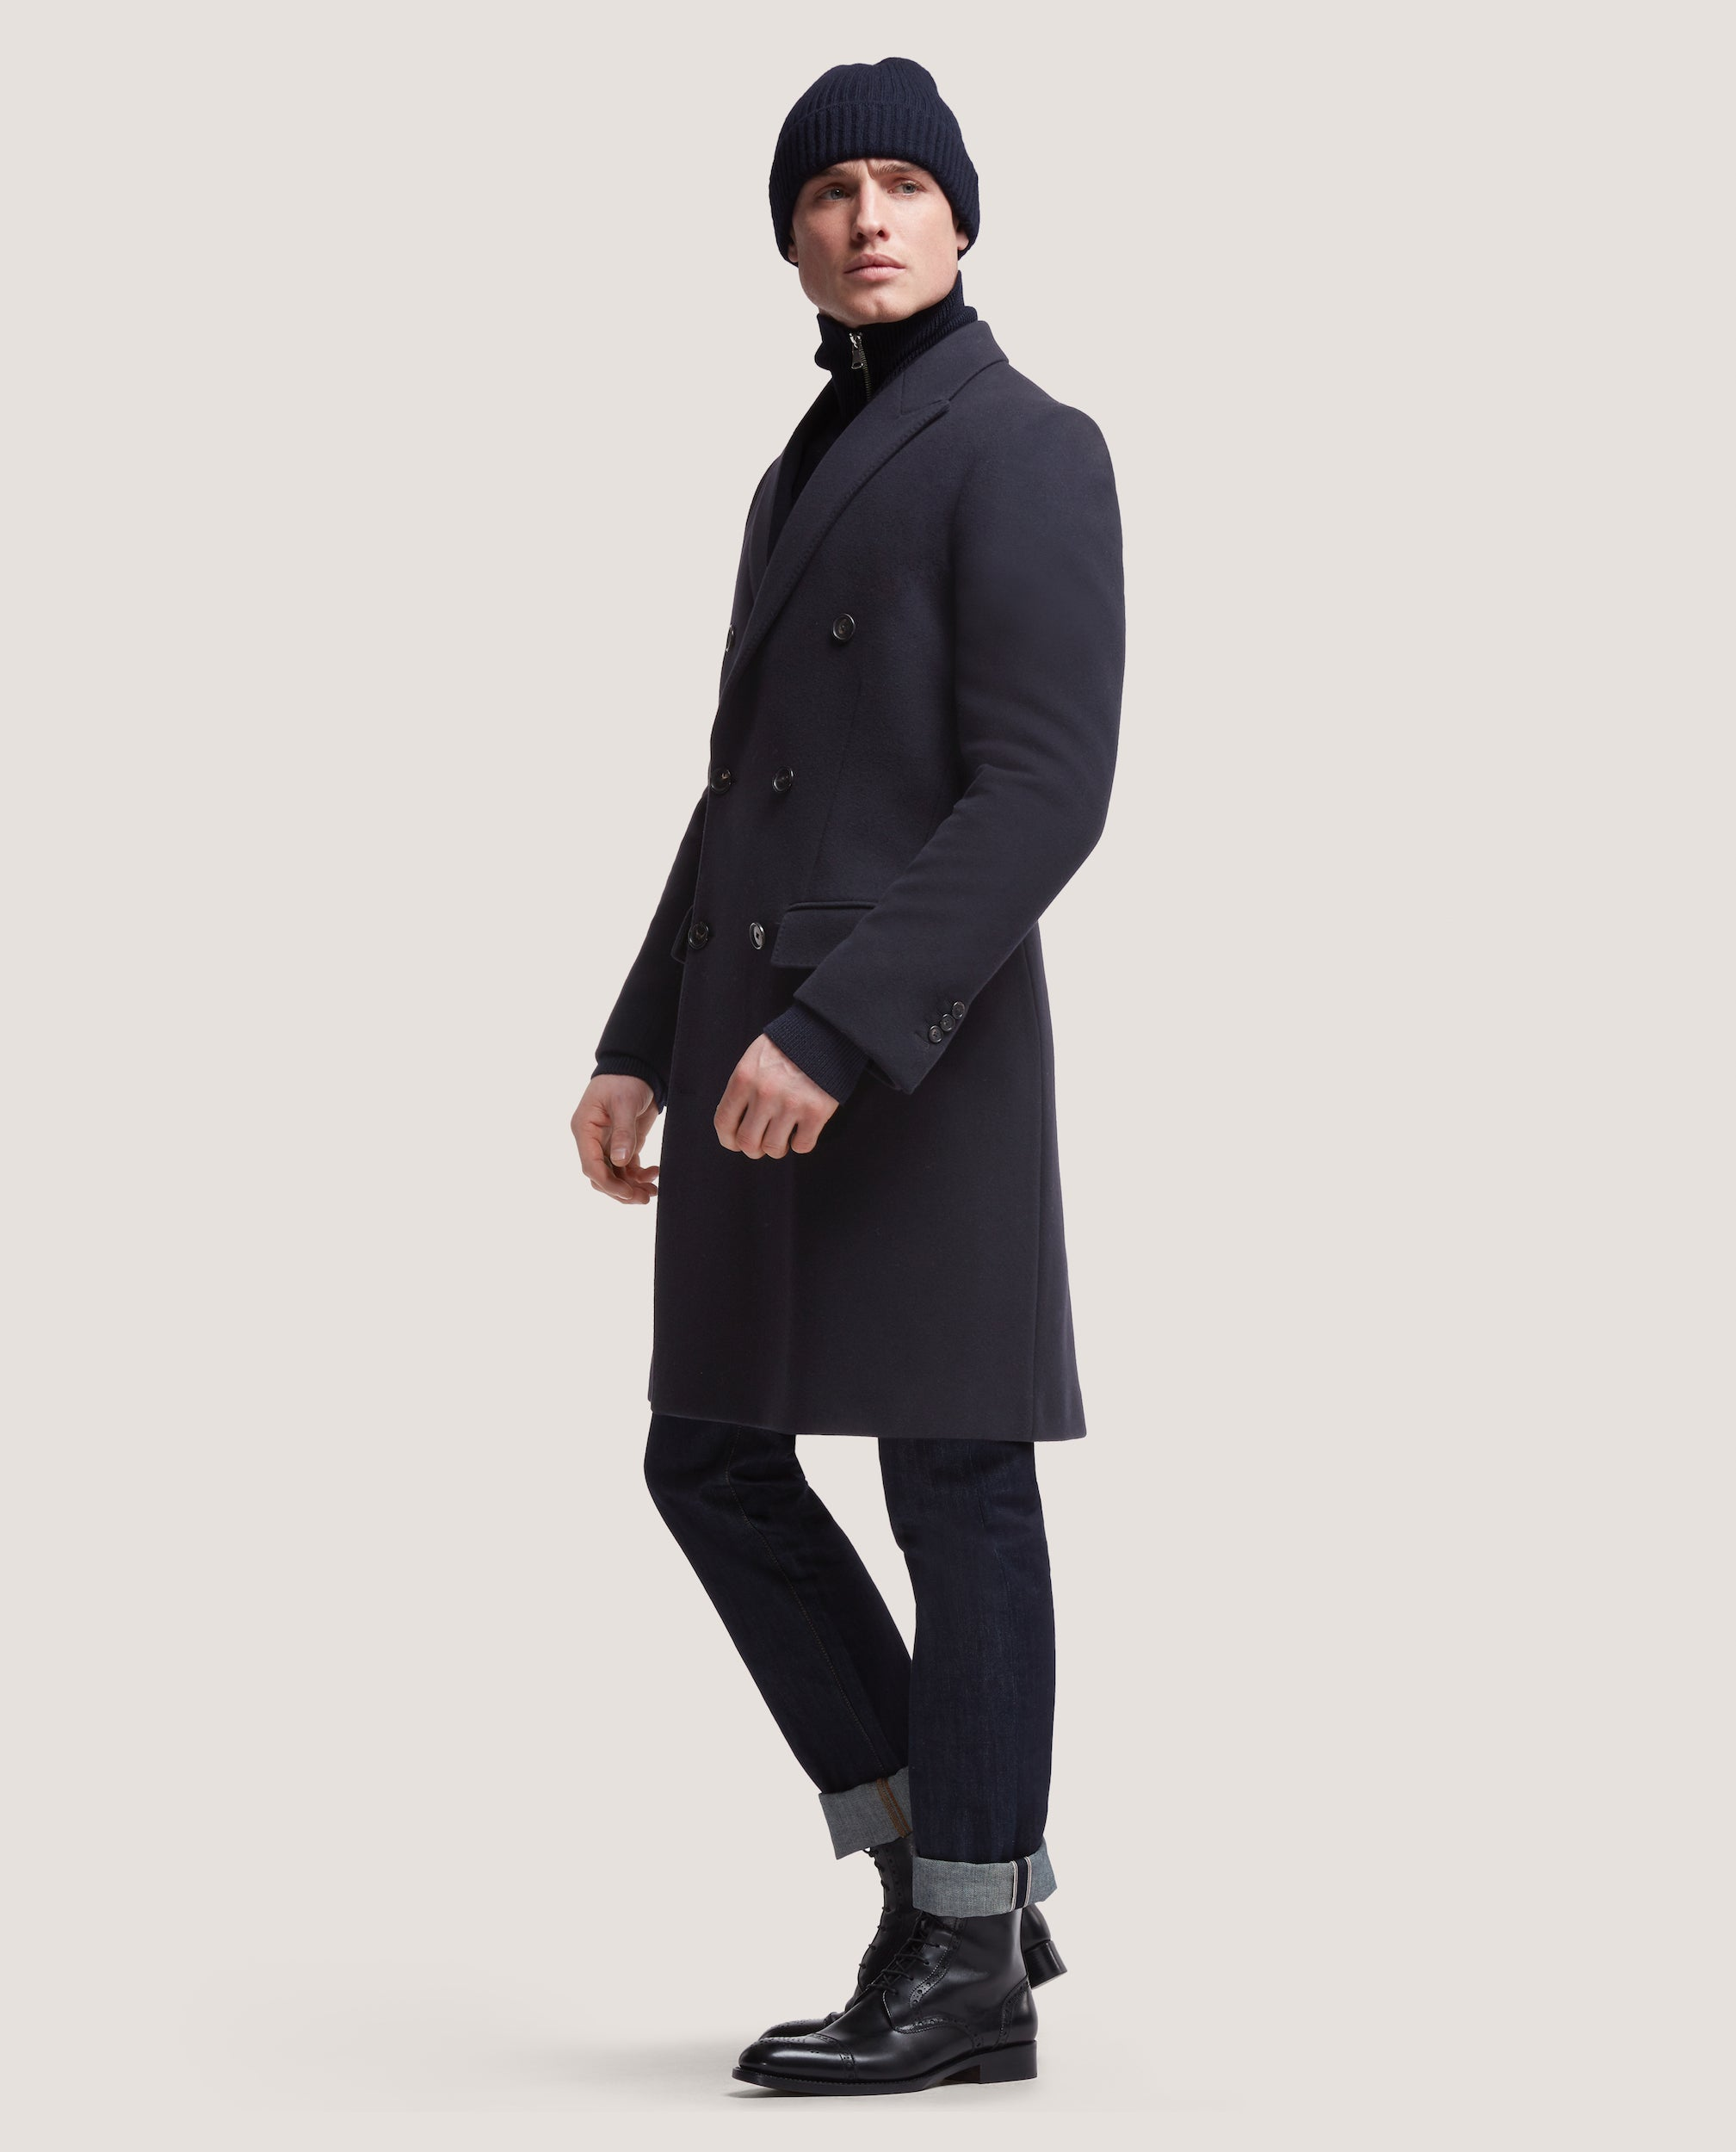 IVES DOUBLE BREASTED WOOL OVERCOAT SALLE PRIVÉE